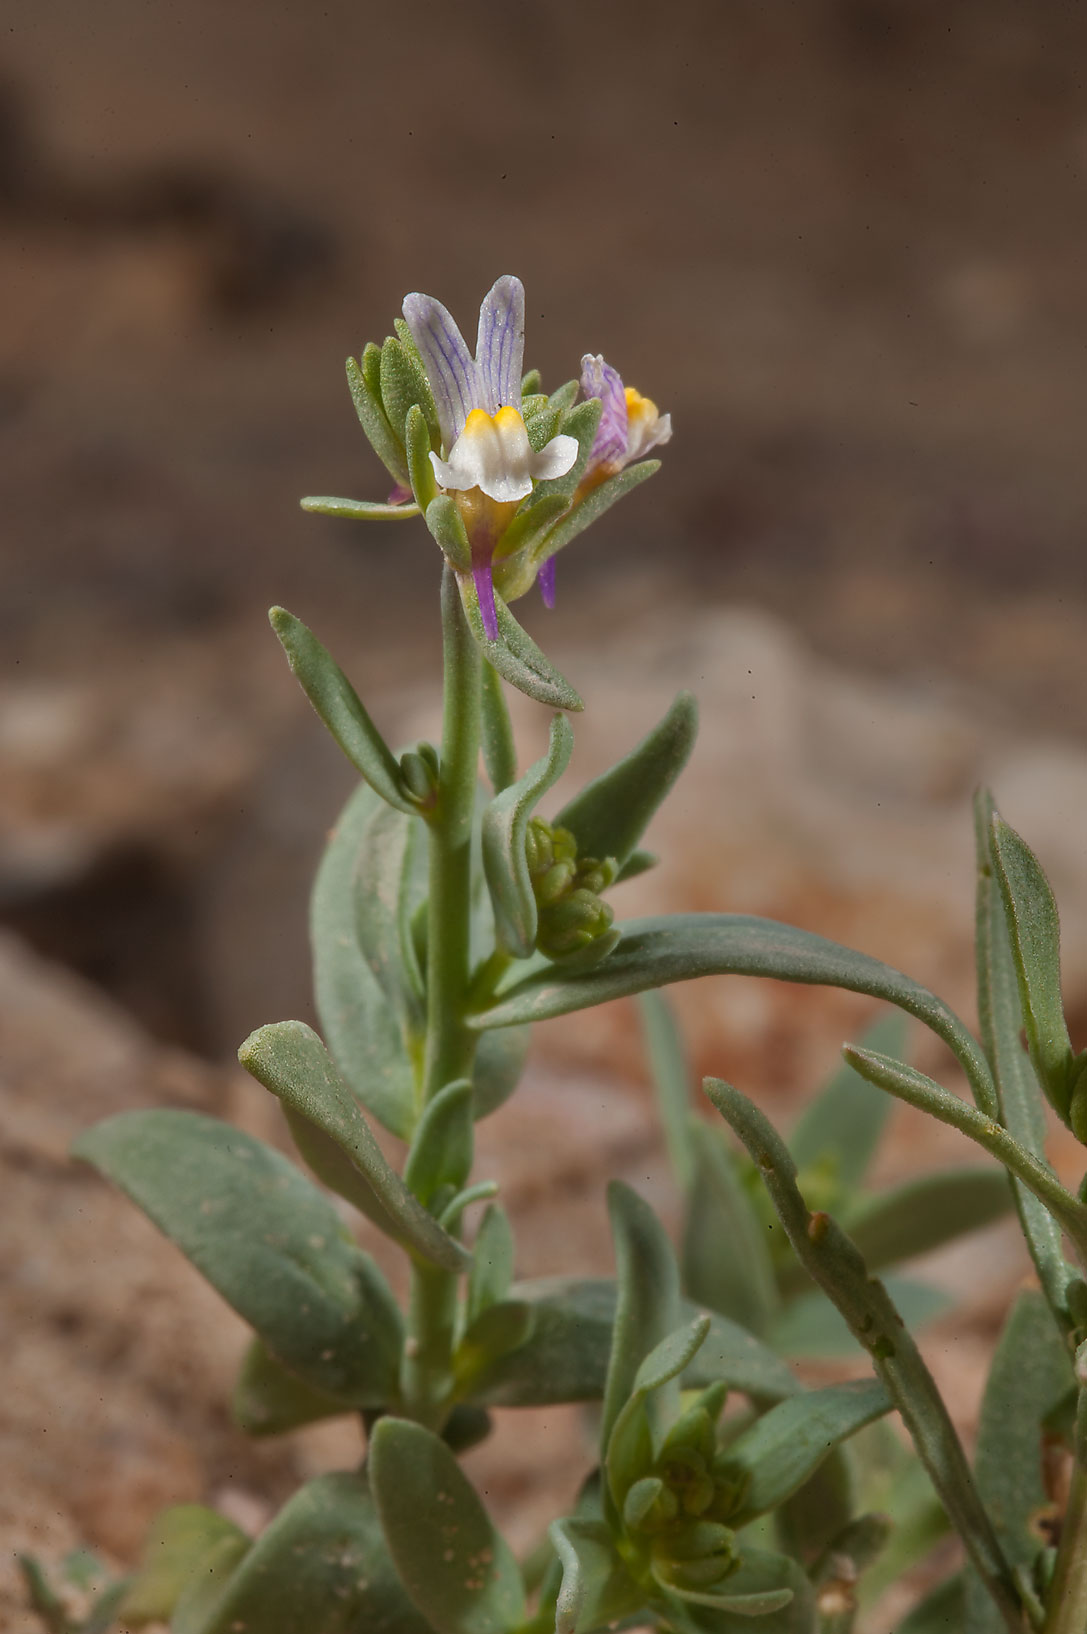 Plant of Linaria albifrons with a flower on...from Ras Laffan. North-eastern Qatar